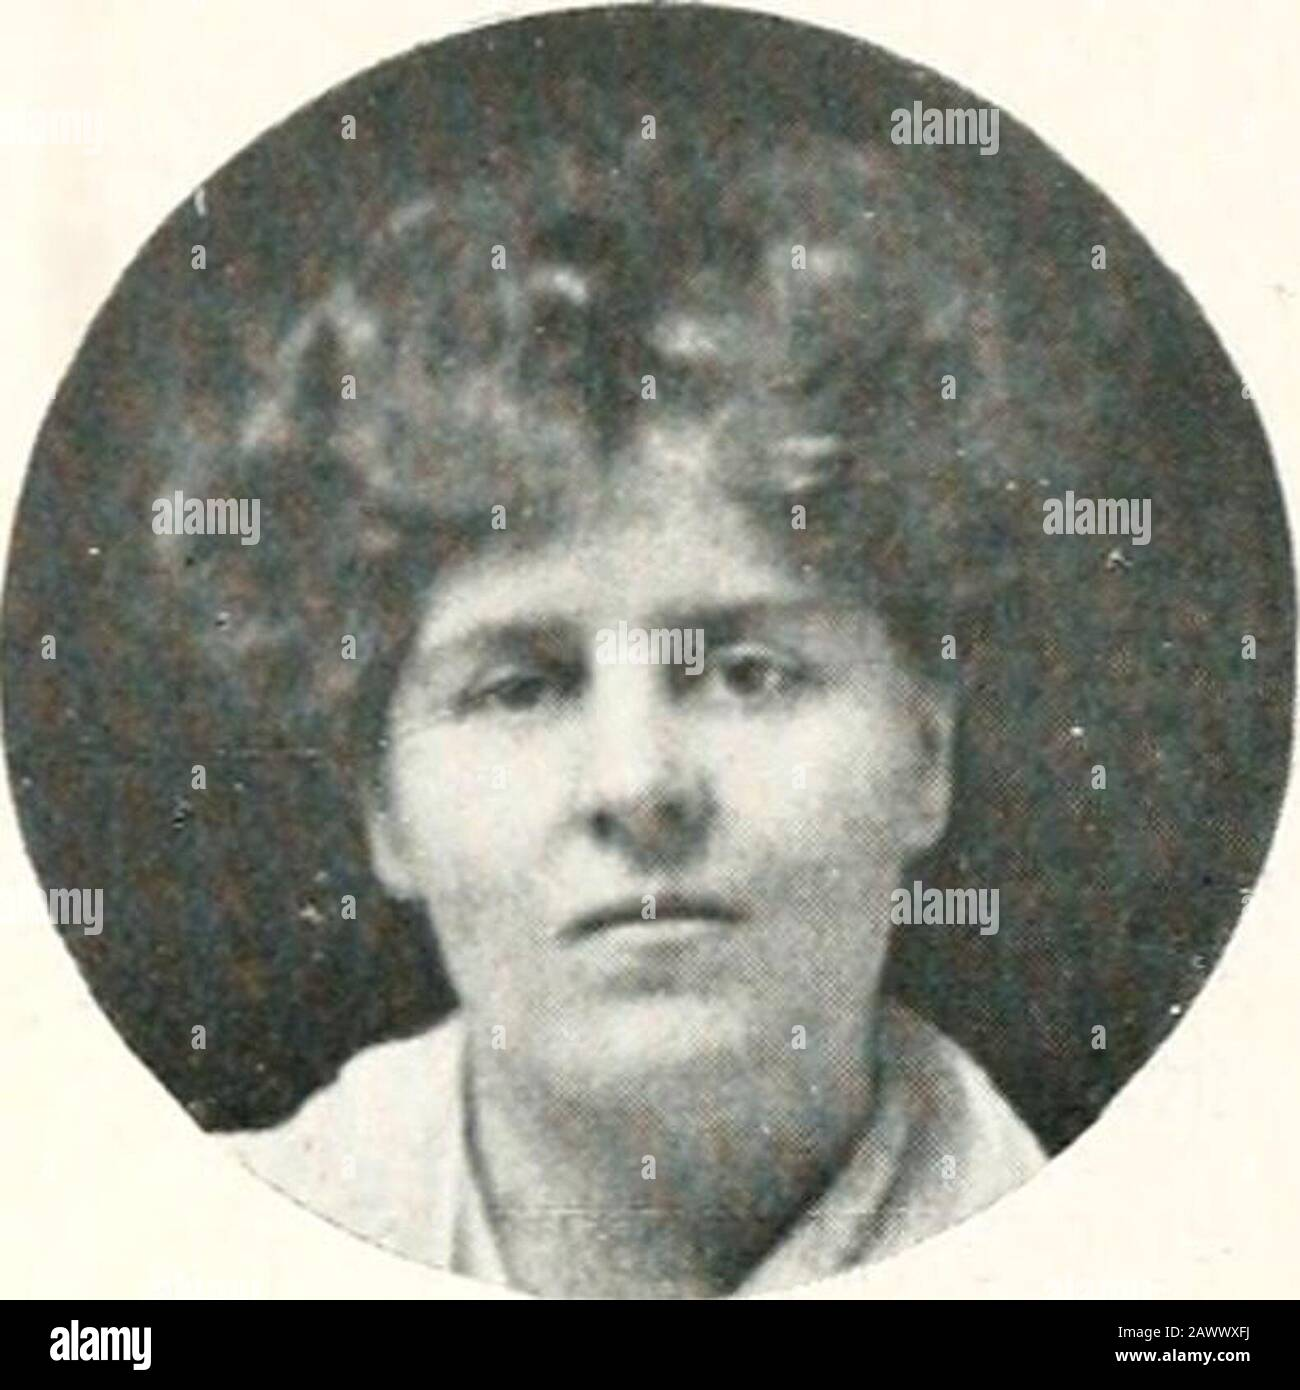 Photographic pedigree of the descendants of Isaac and Rachel Wilson . Robert Algernon Fox, born at Wellington, on 13th April, 1868. Educatedat Clifton College and Edinburgh University, M.B. Superintendent ofKockwood Asylum, Sydney. Married at Sydney on 17th June, 1903, age35, Julie Carlile Thomas, daughter of Thomas and his wife Margaret Carlile. She was born in England on Stli April, 1873 ; marriedat 29. ? Address : Rookwood Asvlum, Svdnev, Australia. Issue—One son. (a) Maldred Carlile Fox. born at on 20 290 Chap. II. § 2. IND. No. II D 6 b. (IX). FLORENCE MARY FOX = GERALD FOX. Florence Mary Stock Photo